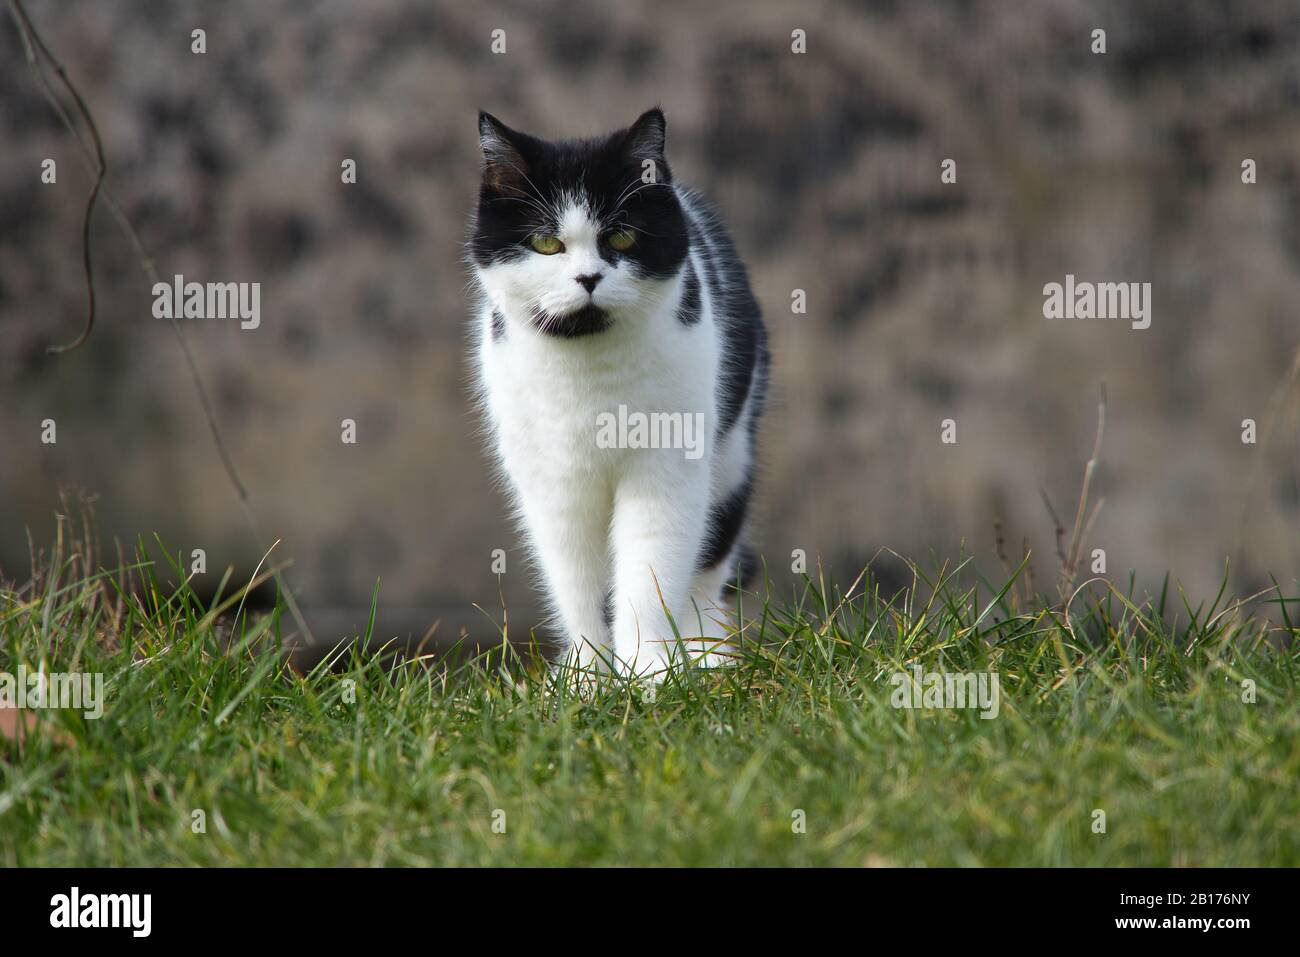 Black and white Persian cat with black nose and green eyes Stock Photo